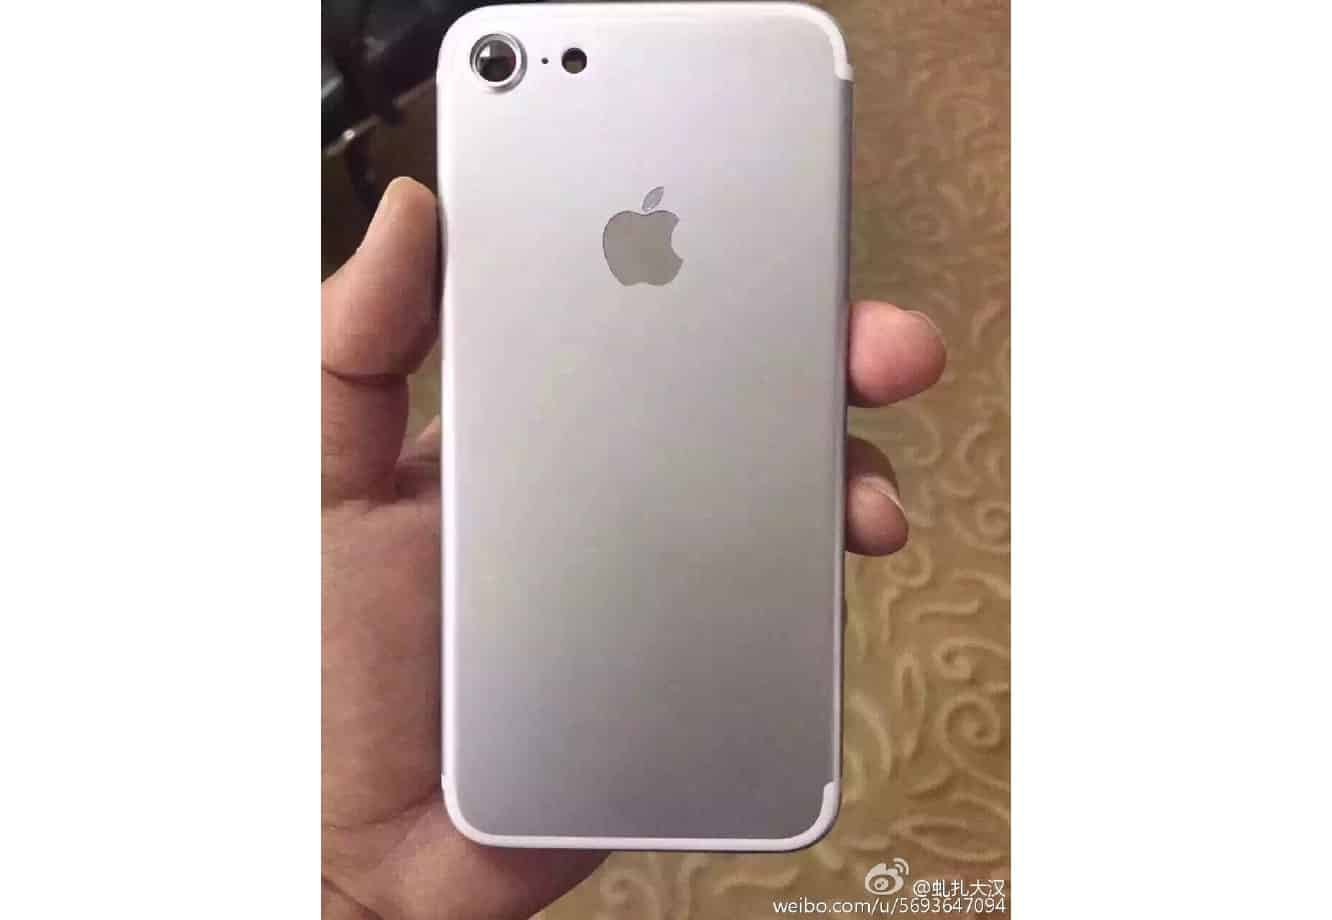 More iPhone 7 leaks surface, protruding camera seen